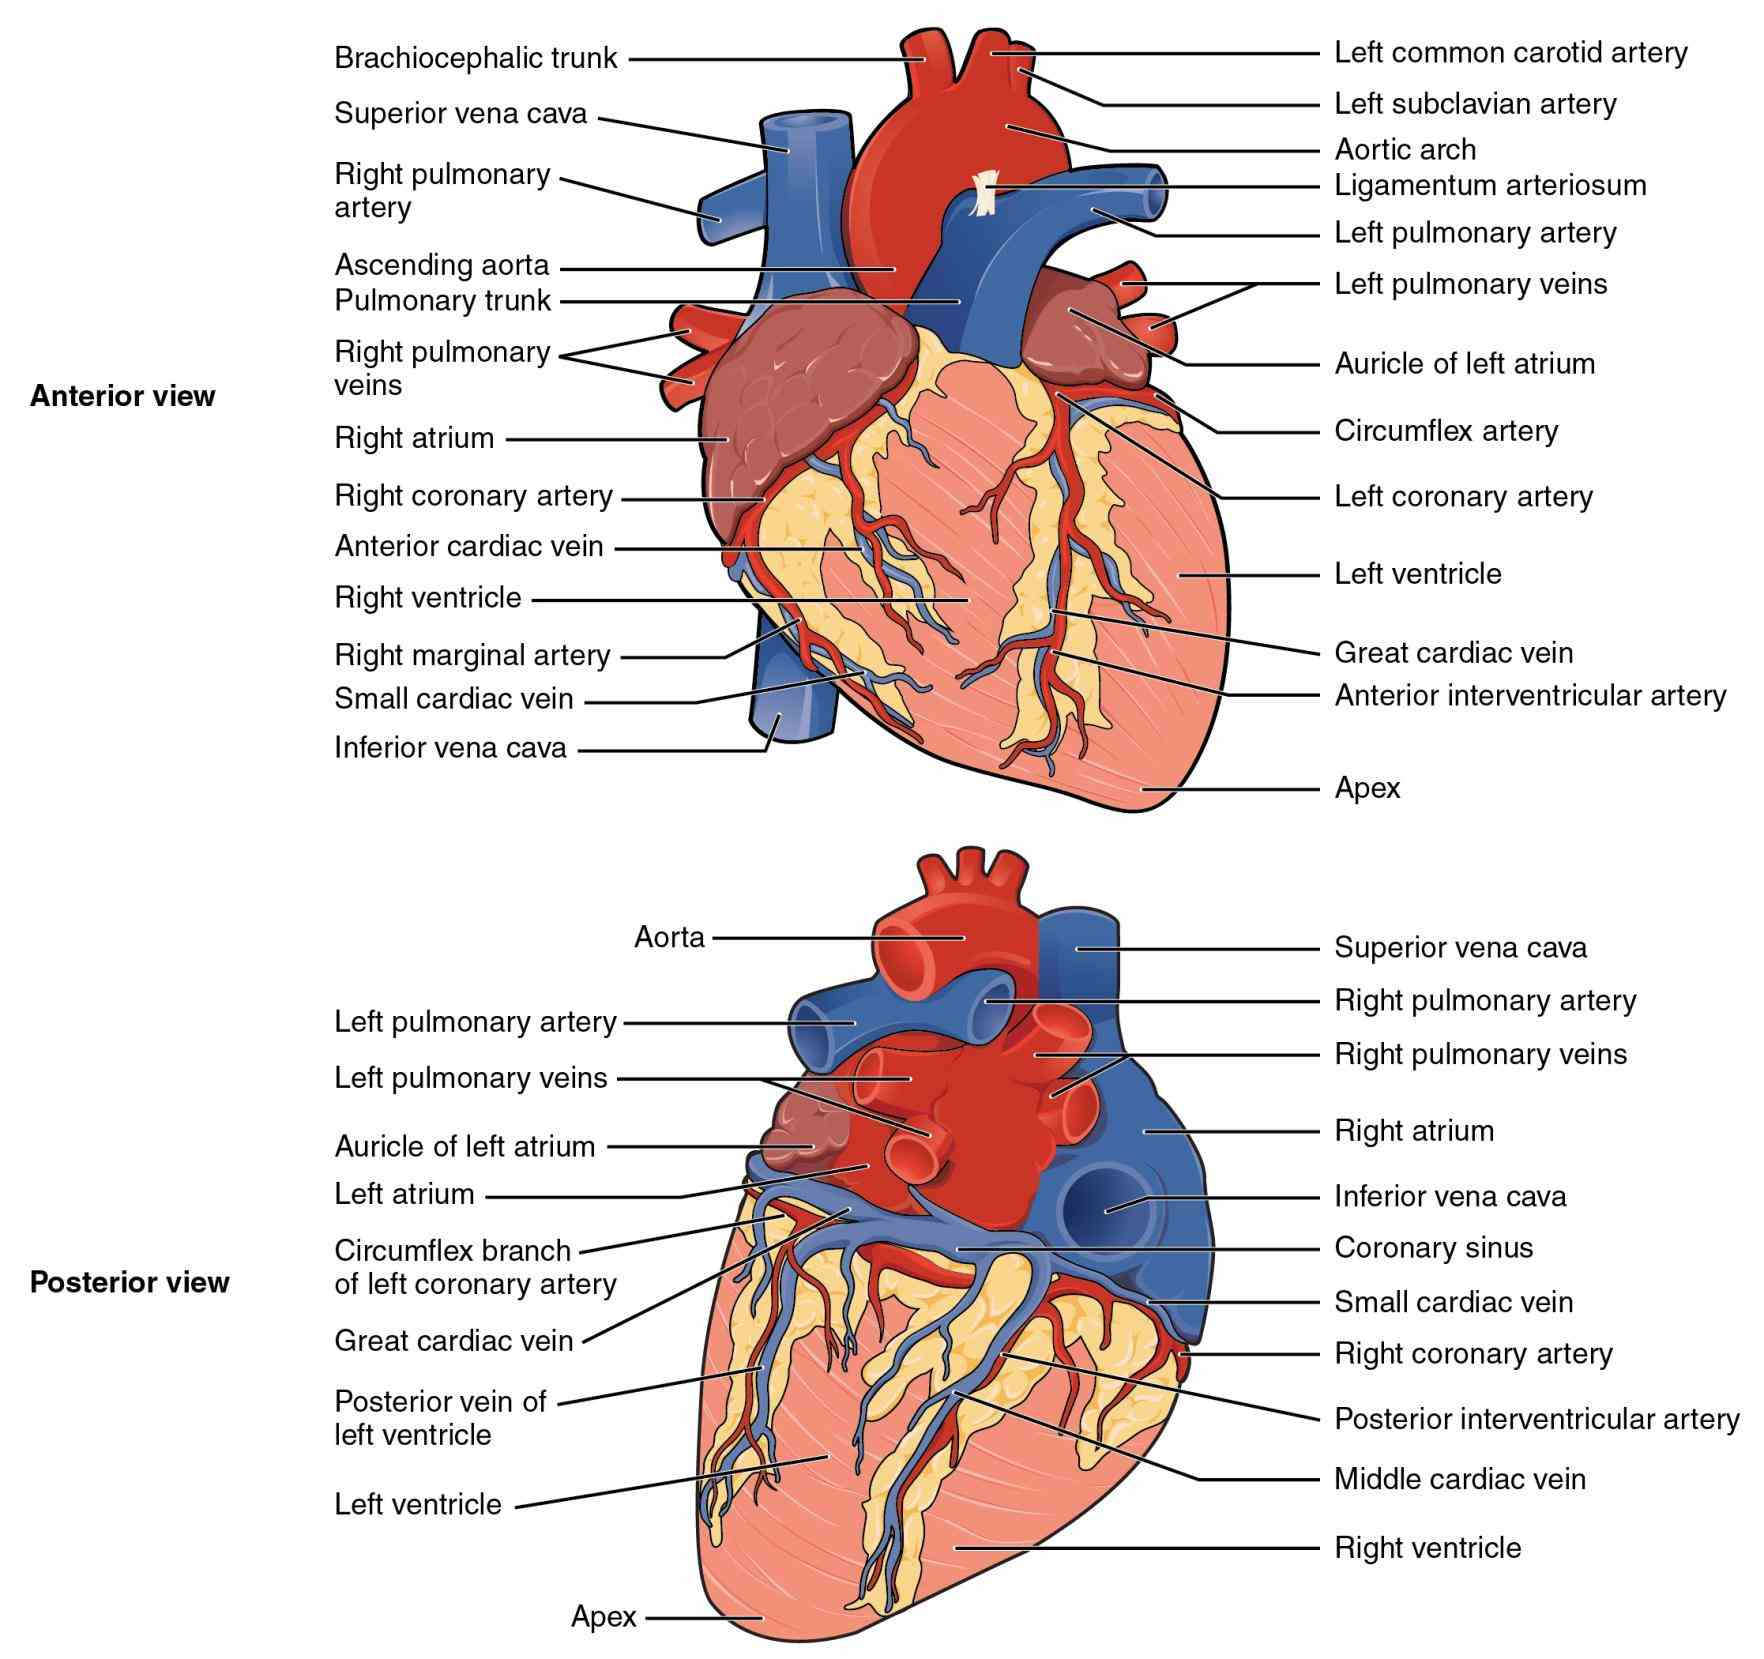 treatments view Images Of The Heart Anatomy an illustration of heart and learn more about medical anatomy illustrations start